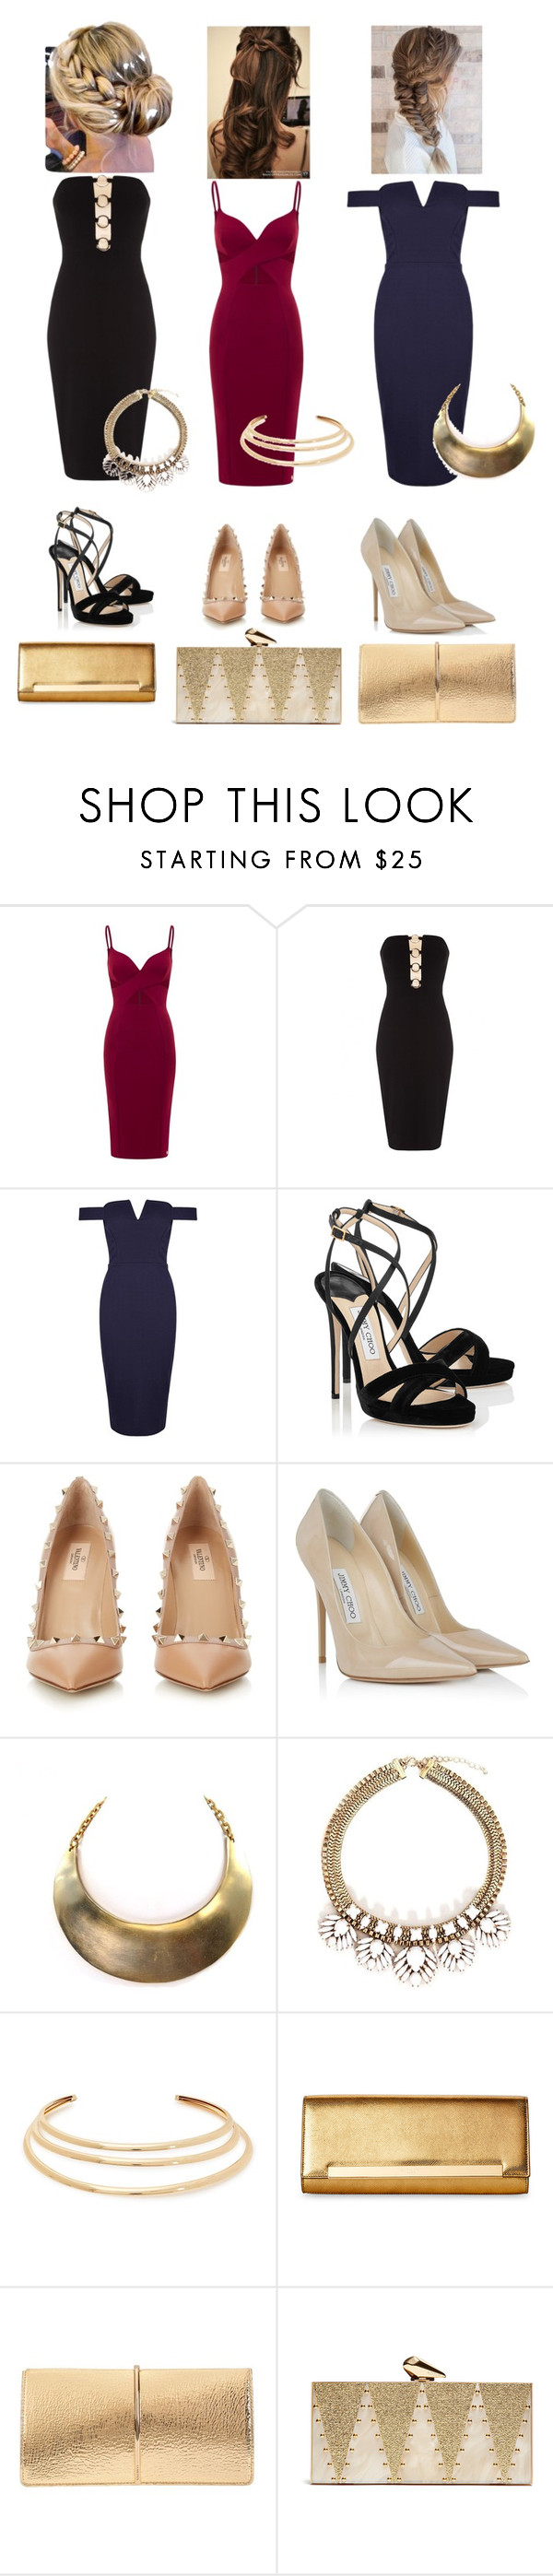 """formal dinner"" by cid-paradero on Polyvore featuring Jimmy Choo, Valentino, Kenneth Jay Lane, Yves Saint Laurent, Nina Ricci and KOTUR"